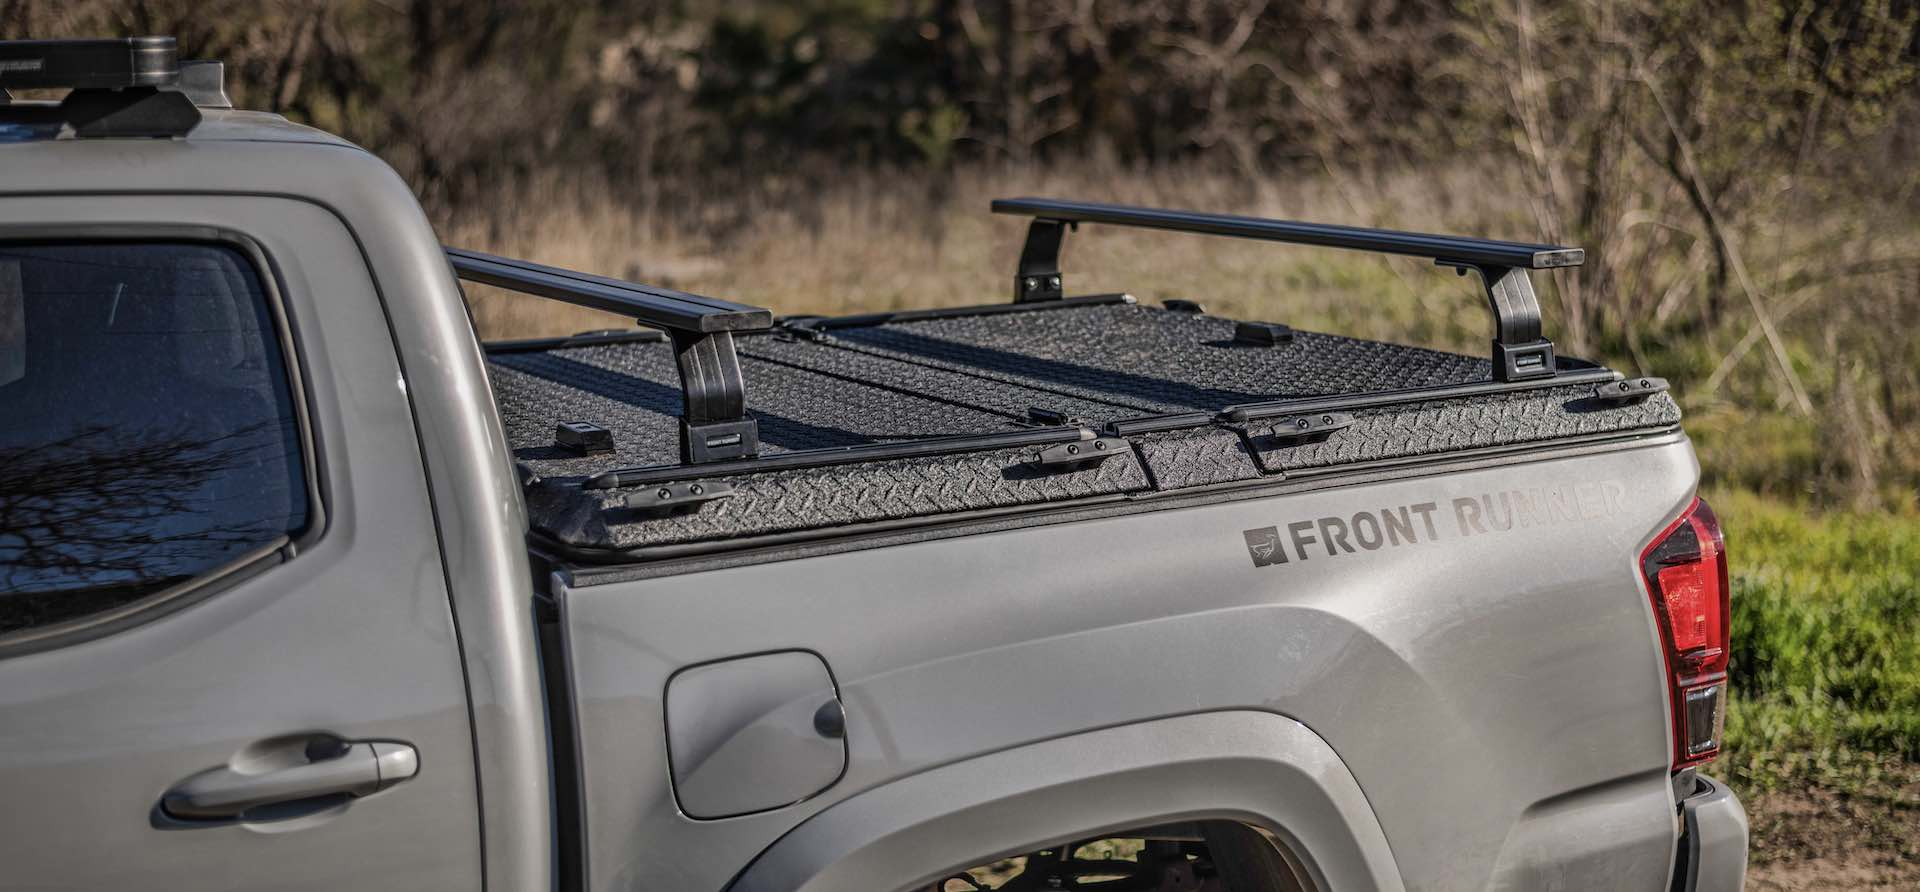 Front Runner DiamondBack Rack System on Toyota Tacoma